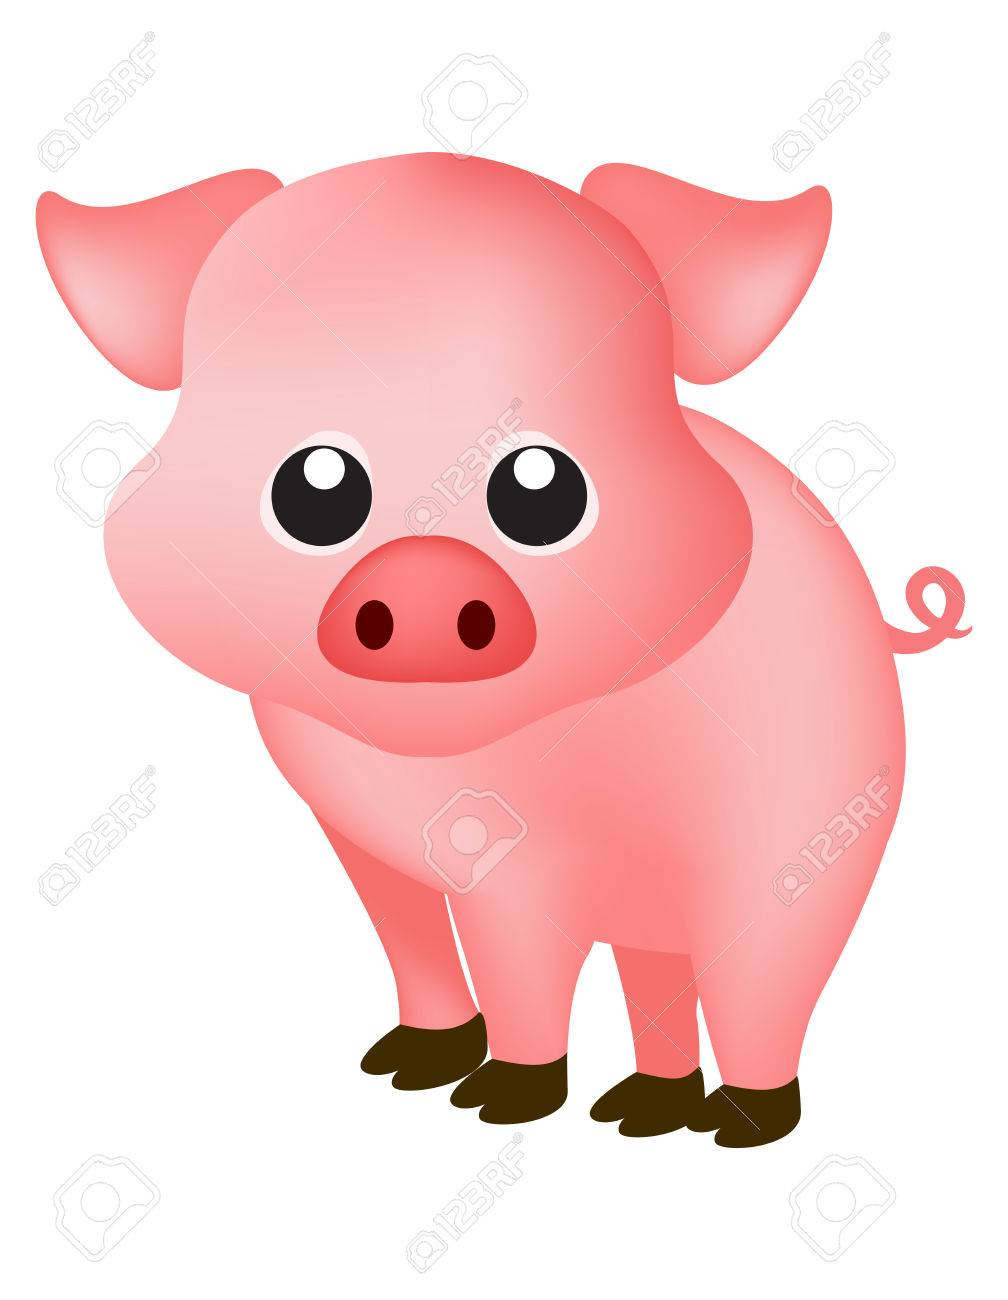 Cute Pink Pig Isolated On White Background Clipart Royalty Free Cliparts Vectors And Stock Illustration Image 38908469